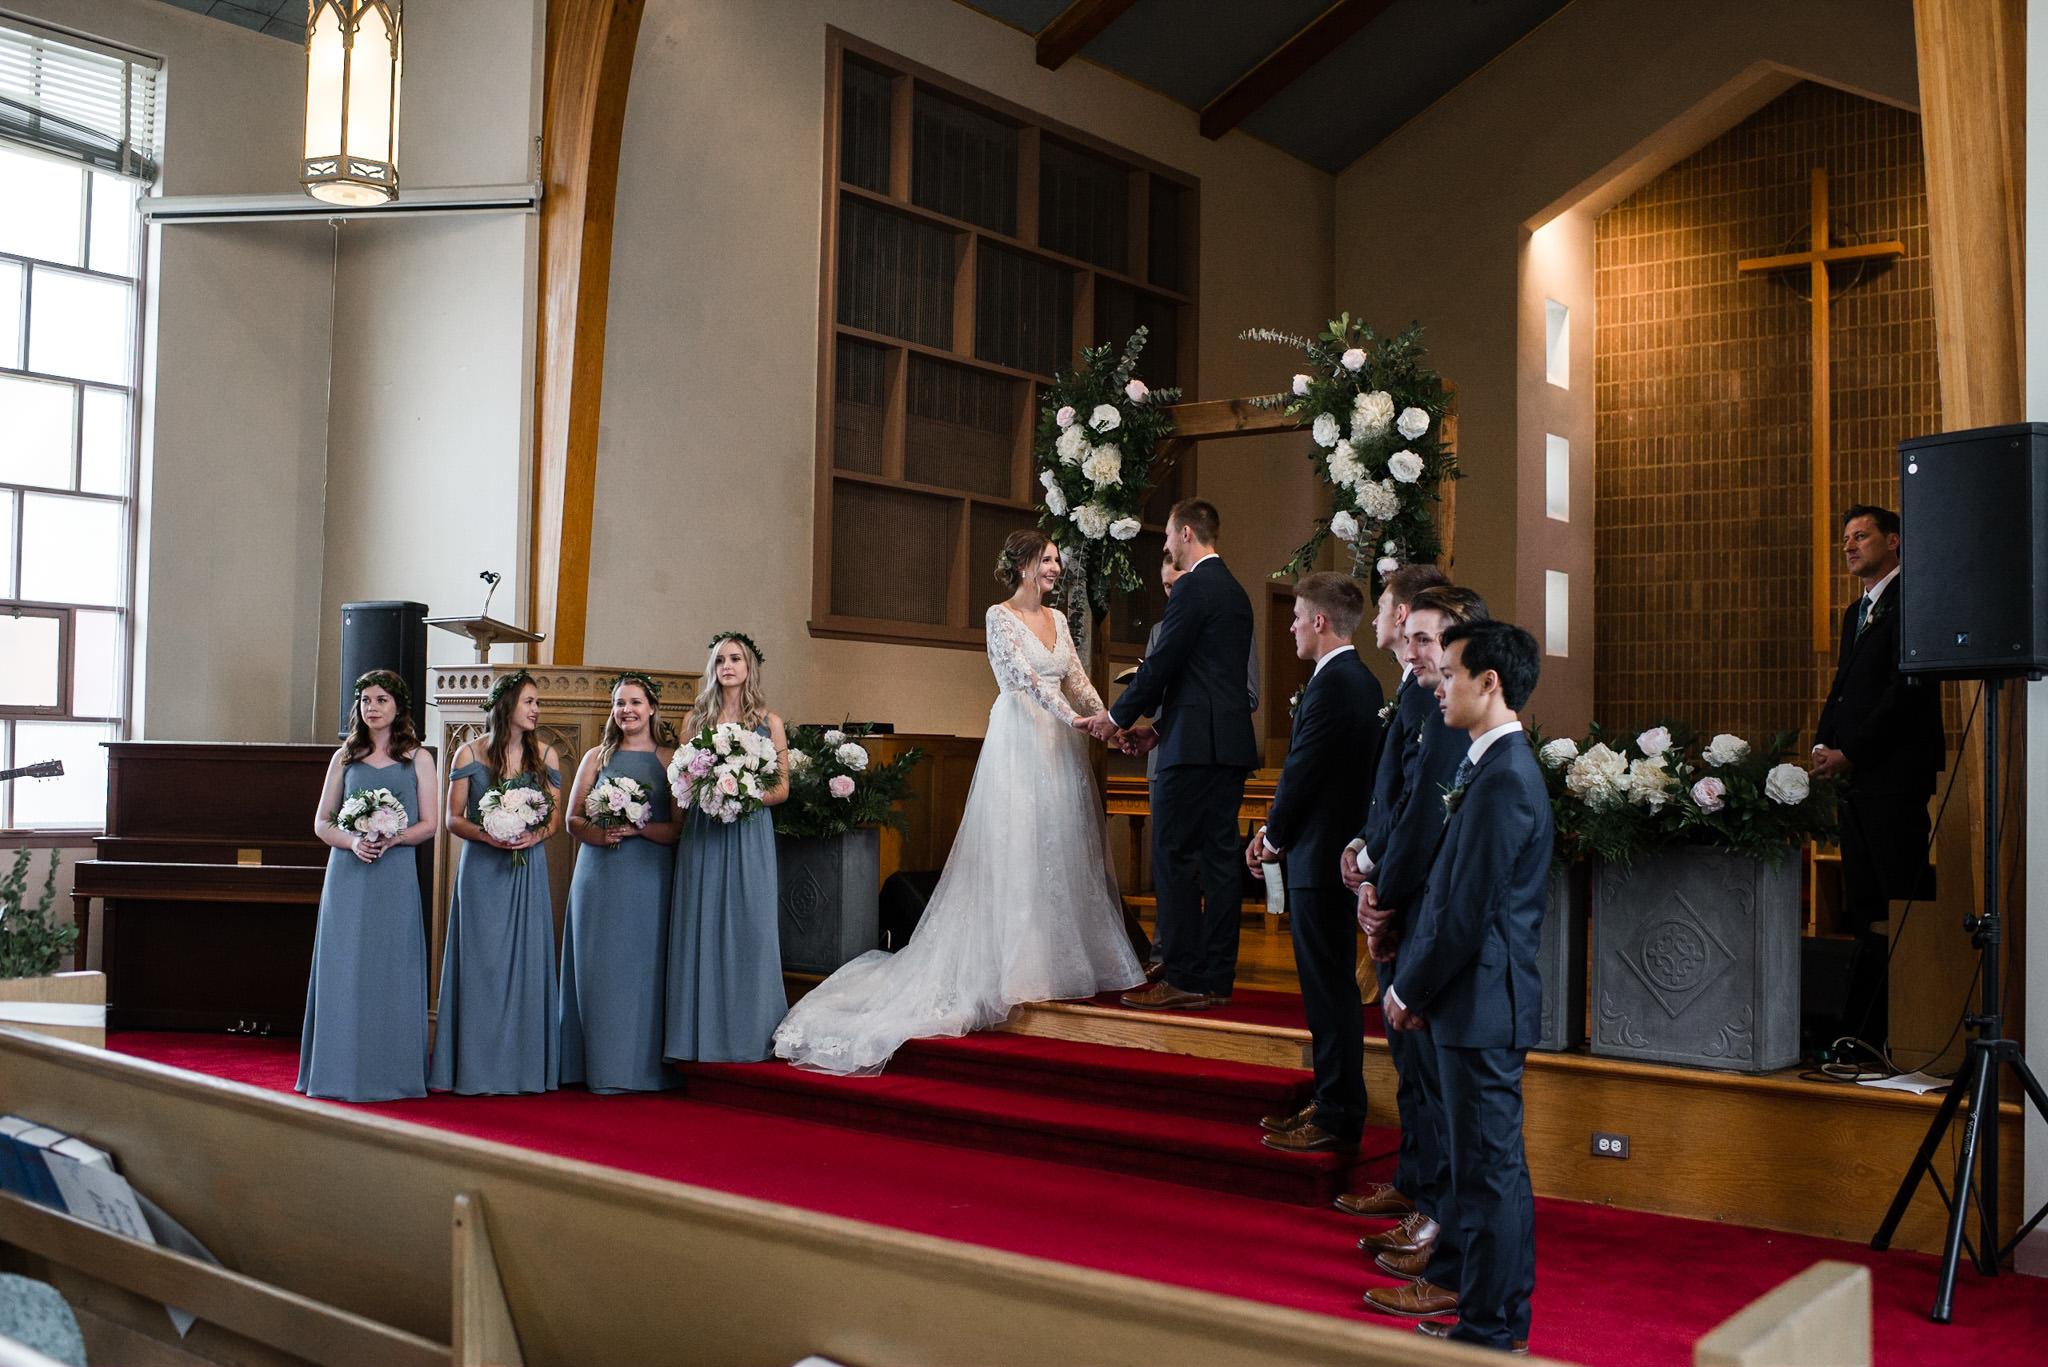 188-bride-groom-worship-toronto-church-wooden-arch-flowers.jpg